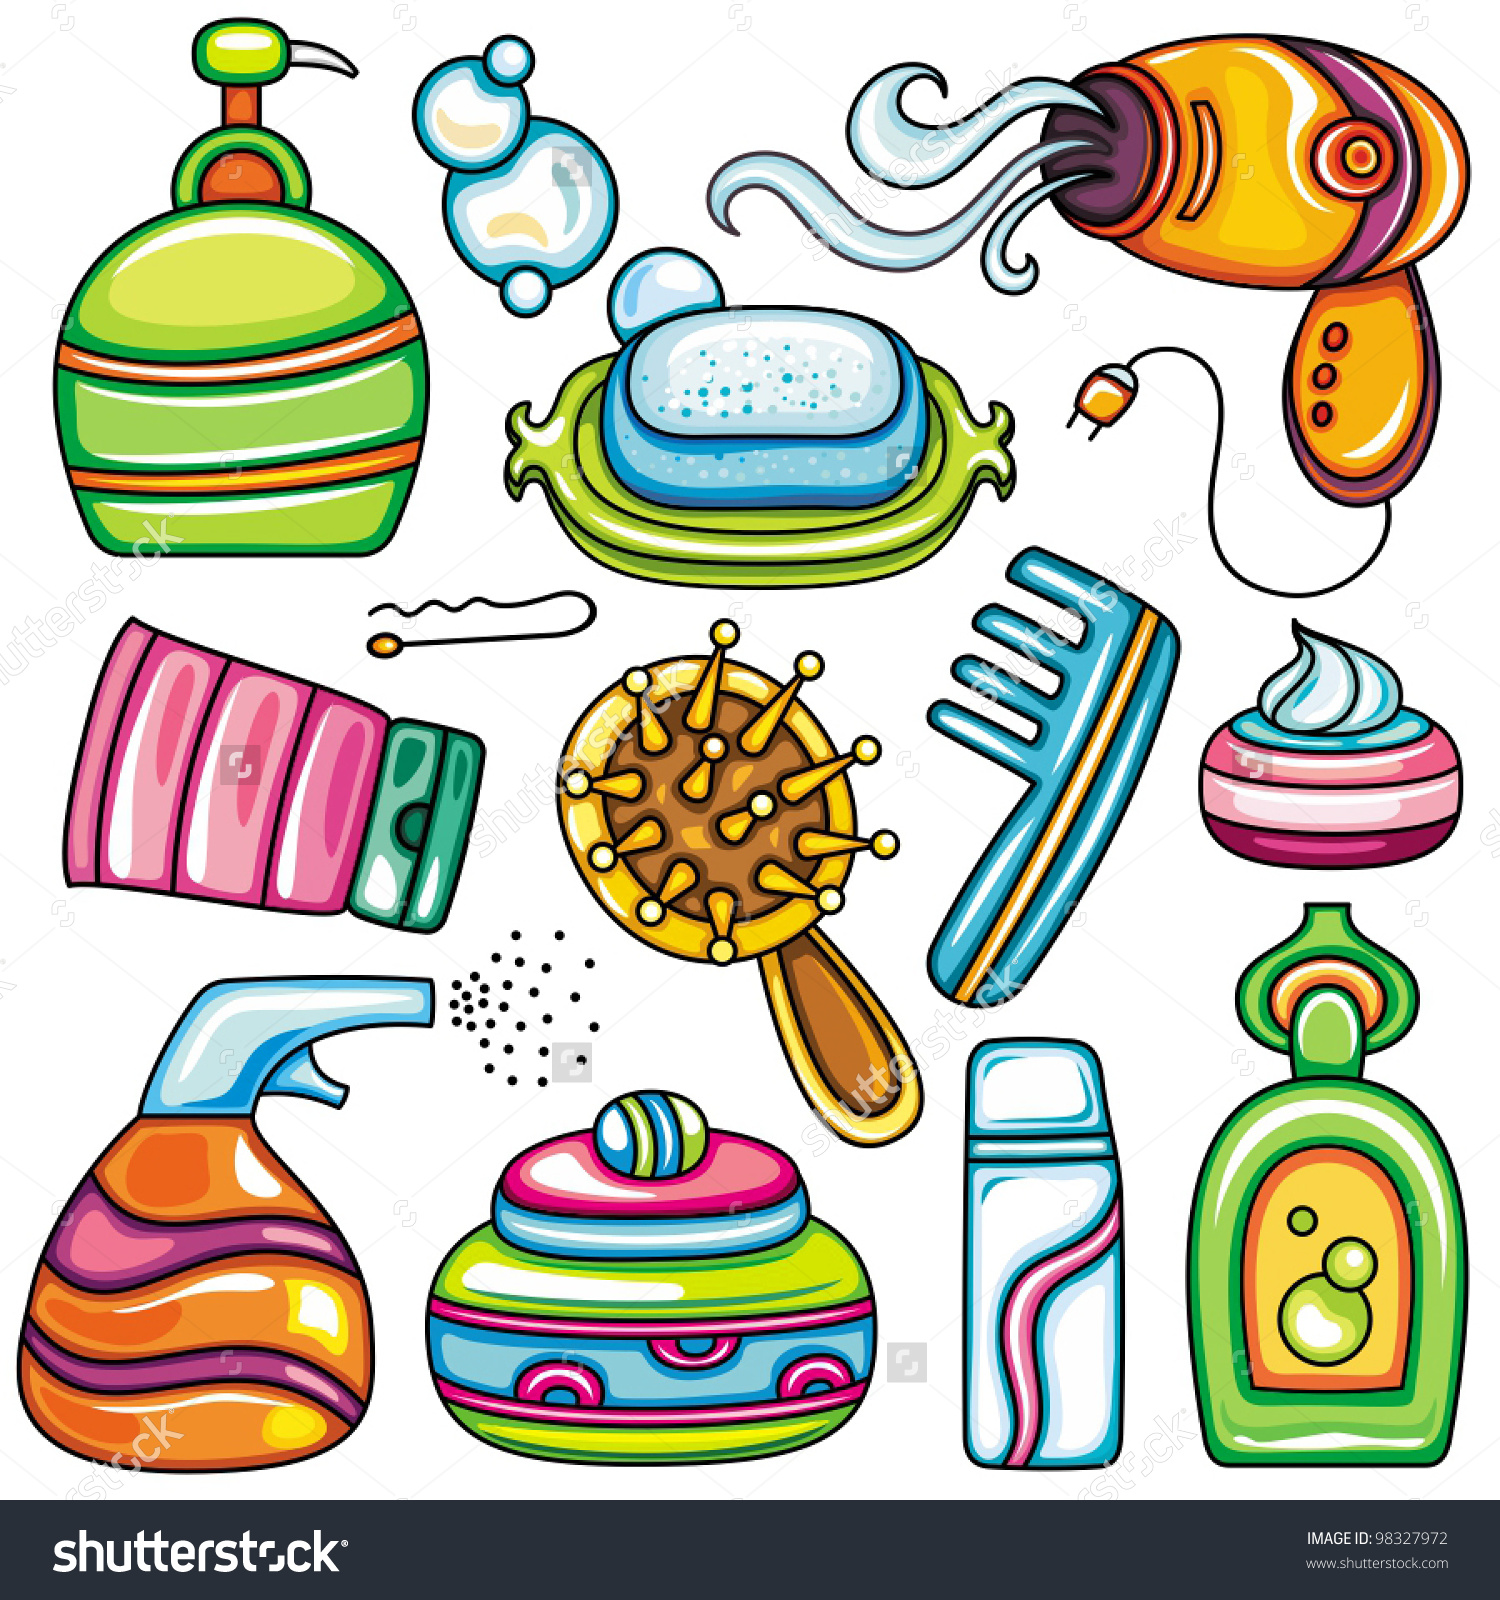 hygiene personal clipart icon vector care bag accessories hair icons body kit series cliparts clipground beauty help